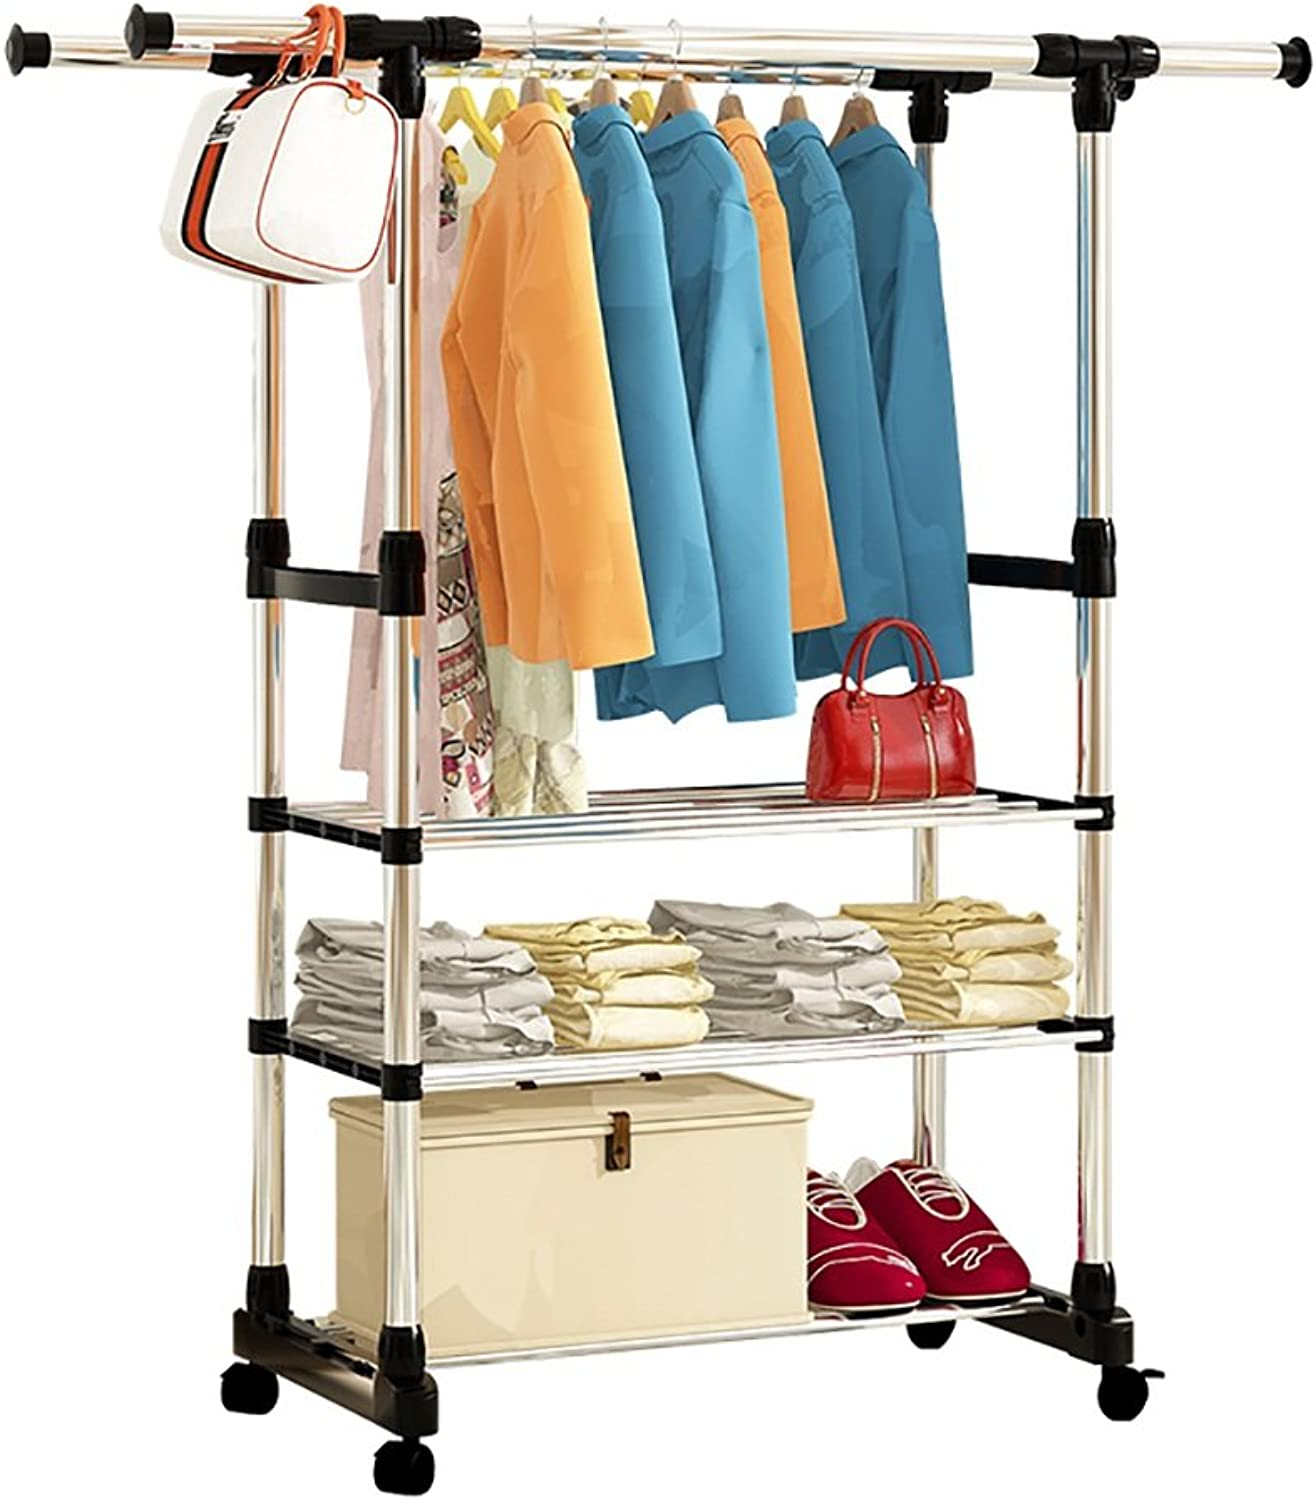 ZZHF yimaojia Stainless Steel Floorstanding  Scalable Coat Rack Thickening   Bedroom Moveable Clothes Rack Clothes Storage Rack (Size   B)